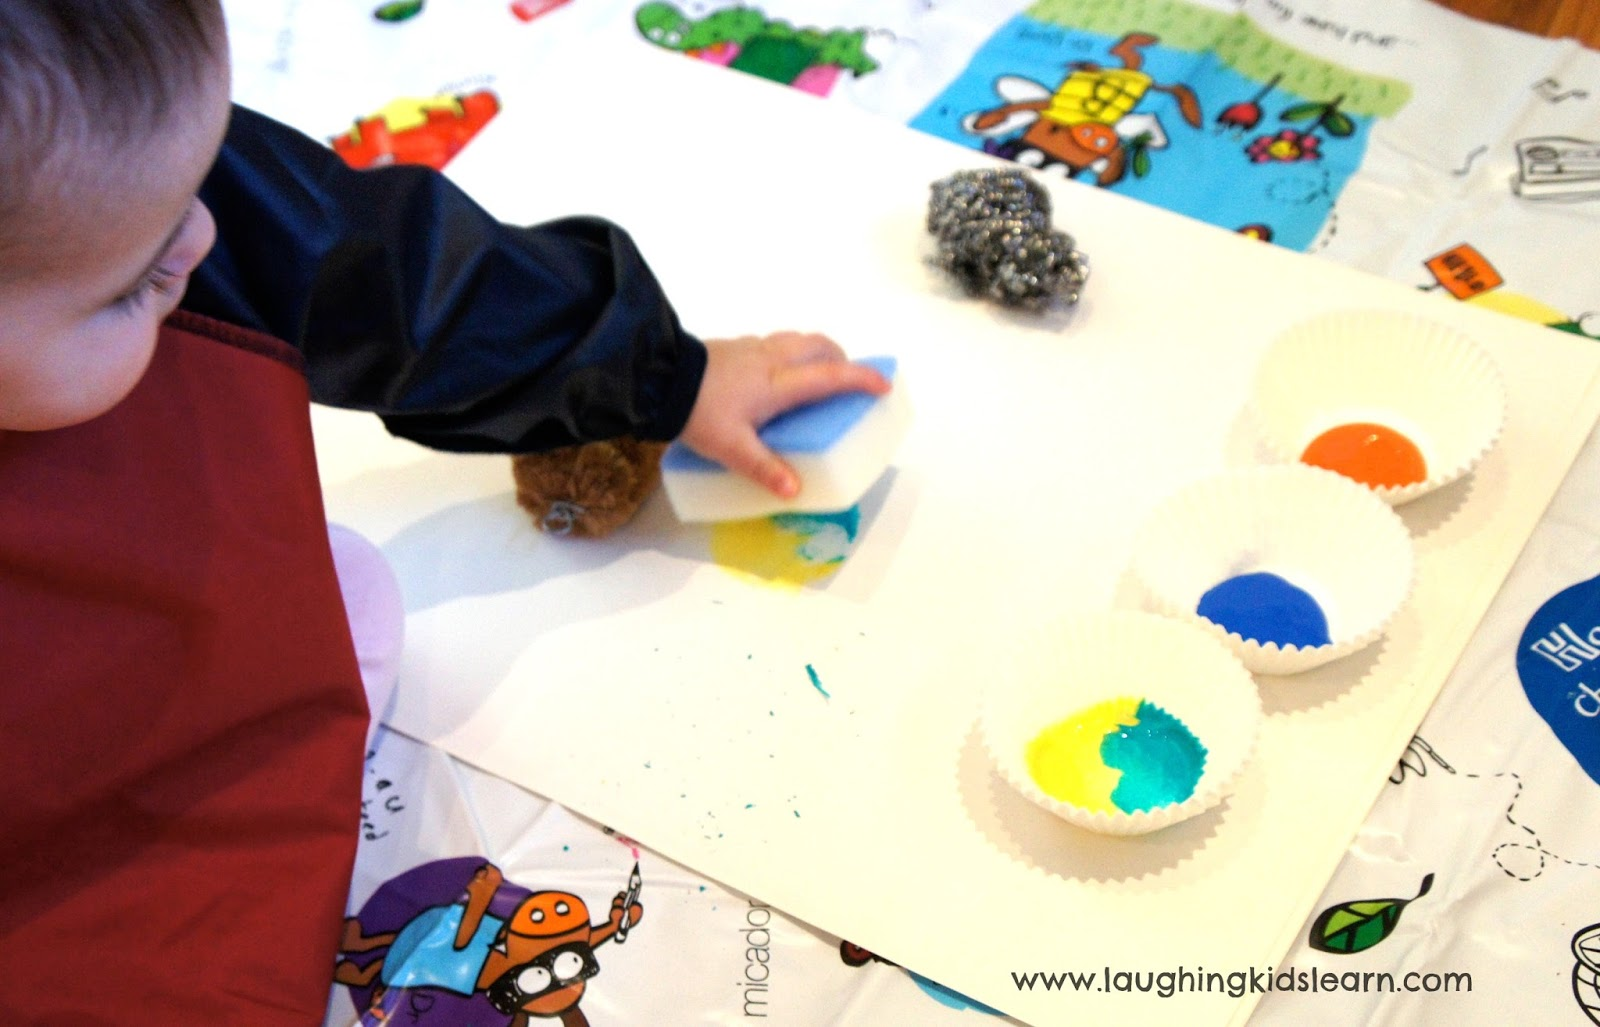 Painting with Kitchen Scrubbers - Laughing Kids Learn